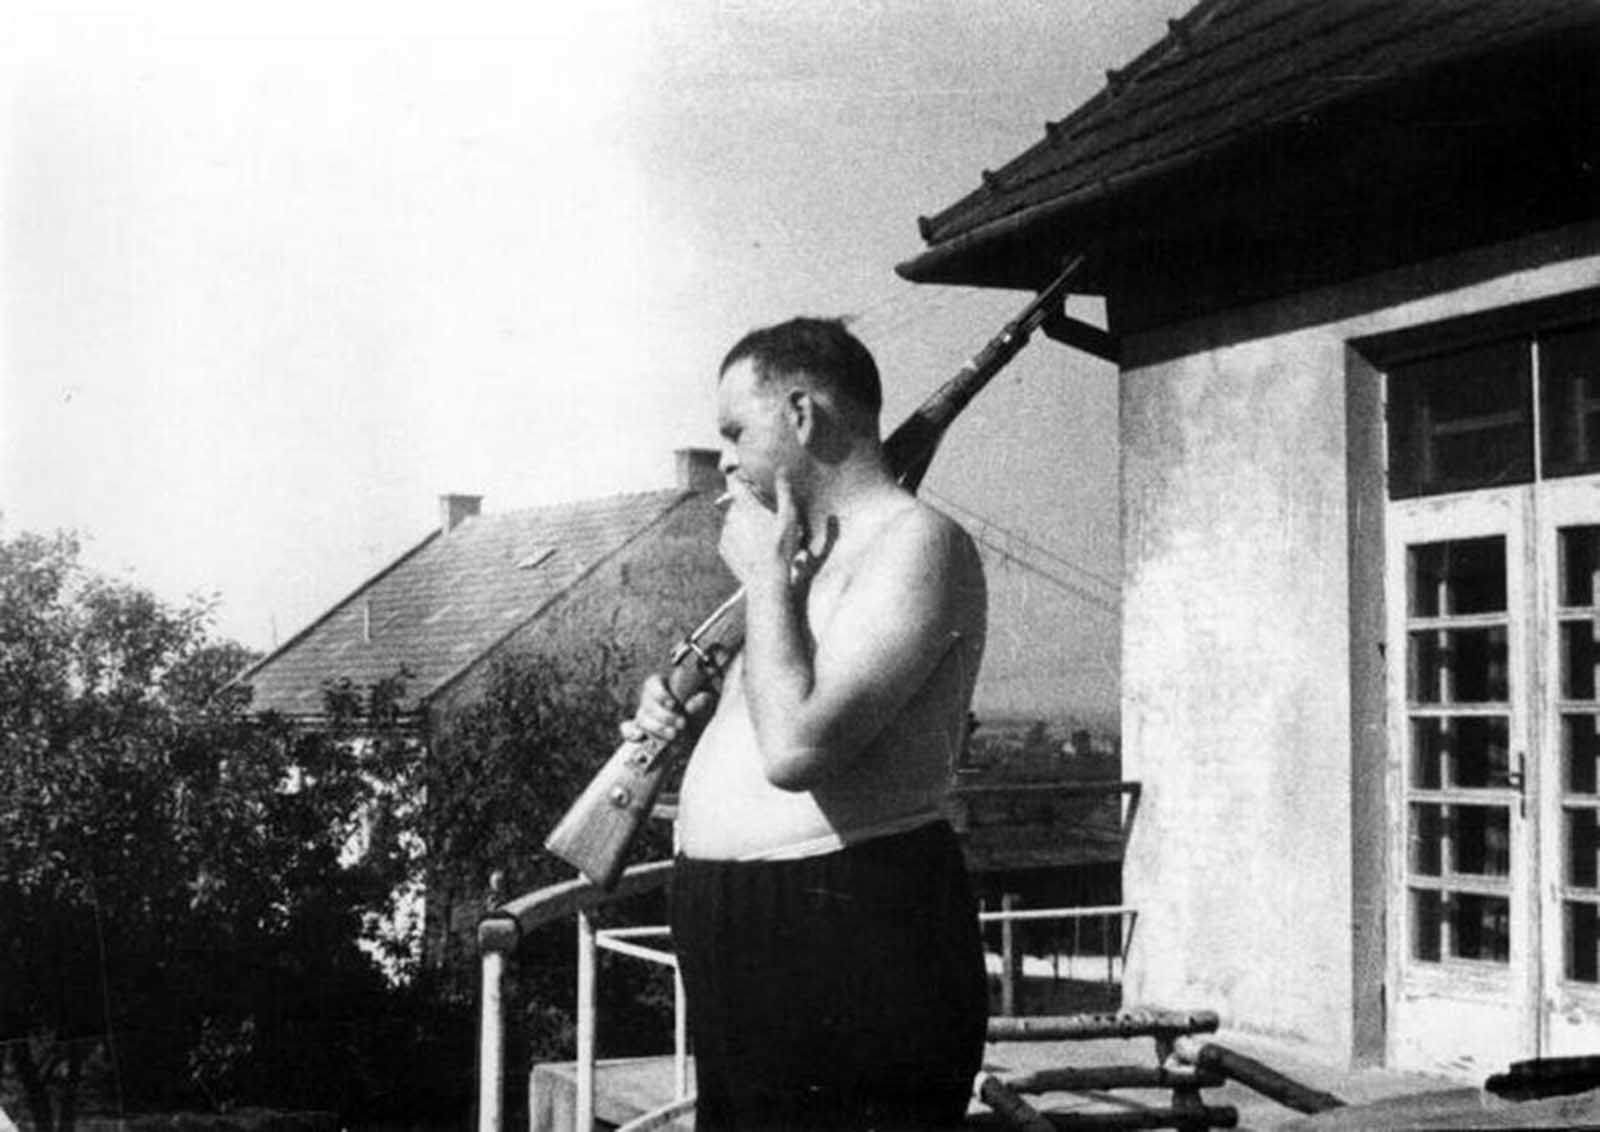 Amon Leopold Goeth was camp commander of the Plaszow concentration camp from February 1943 until September 1944. In the photograph he can be seen standing on his balcony preparing to shoot prisoners.